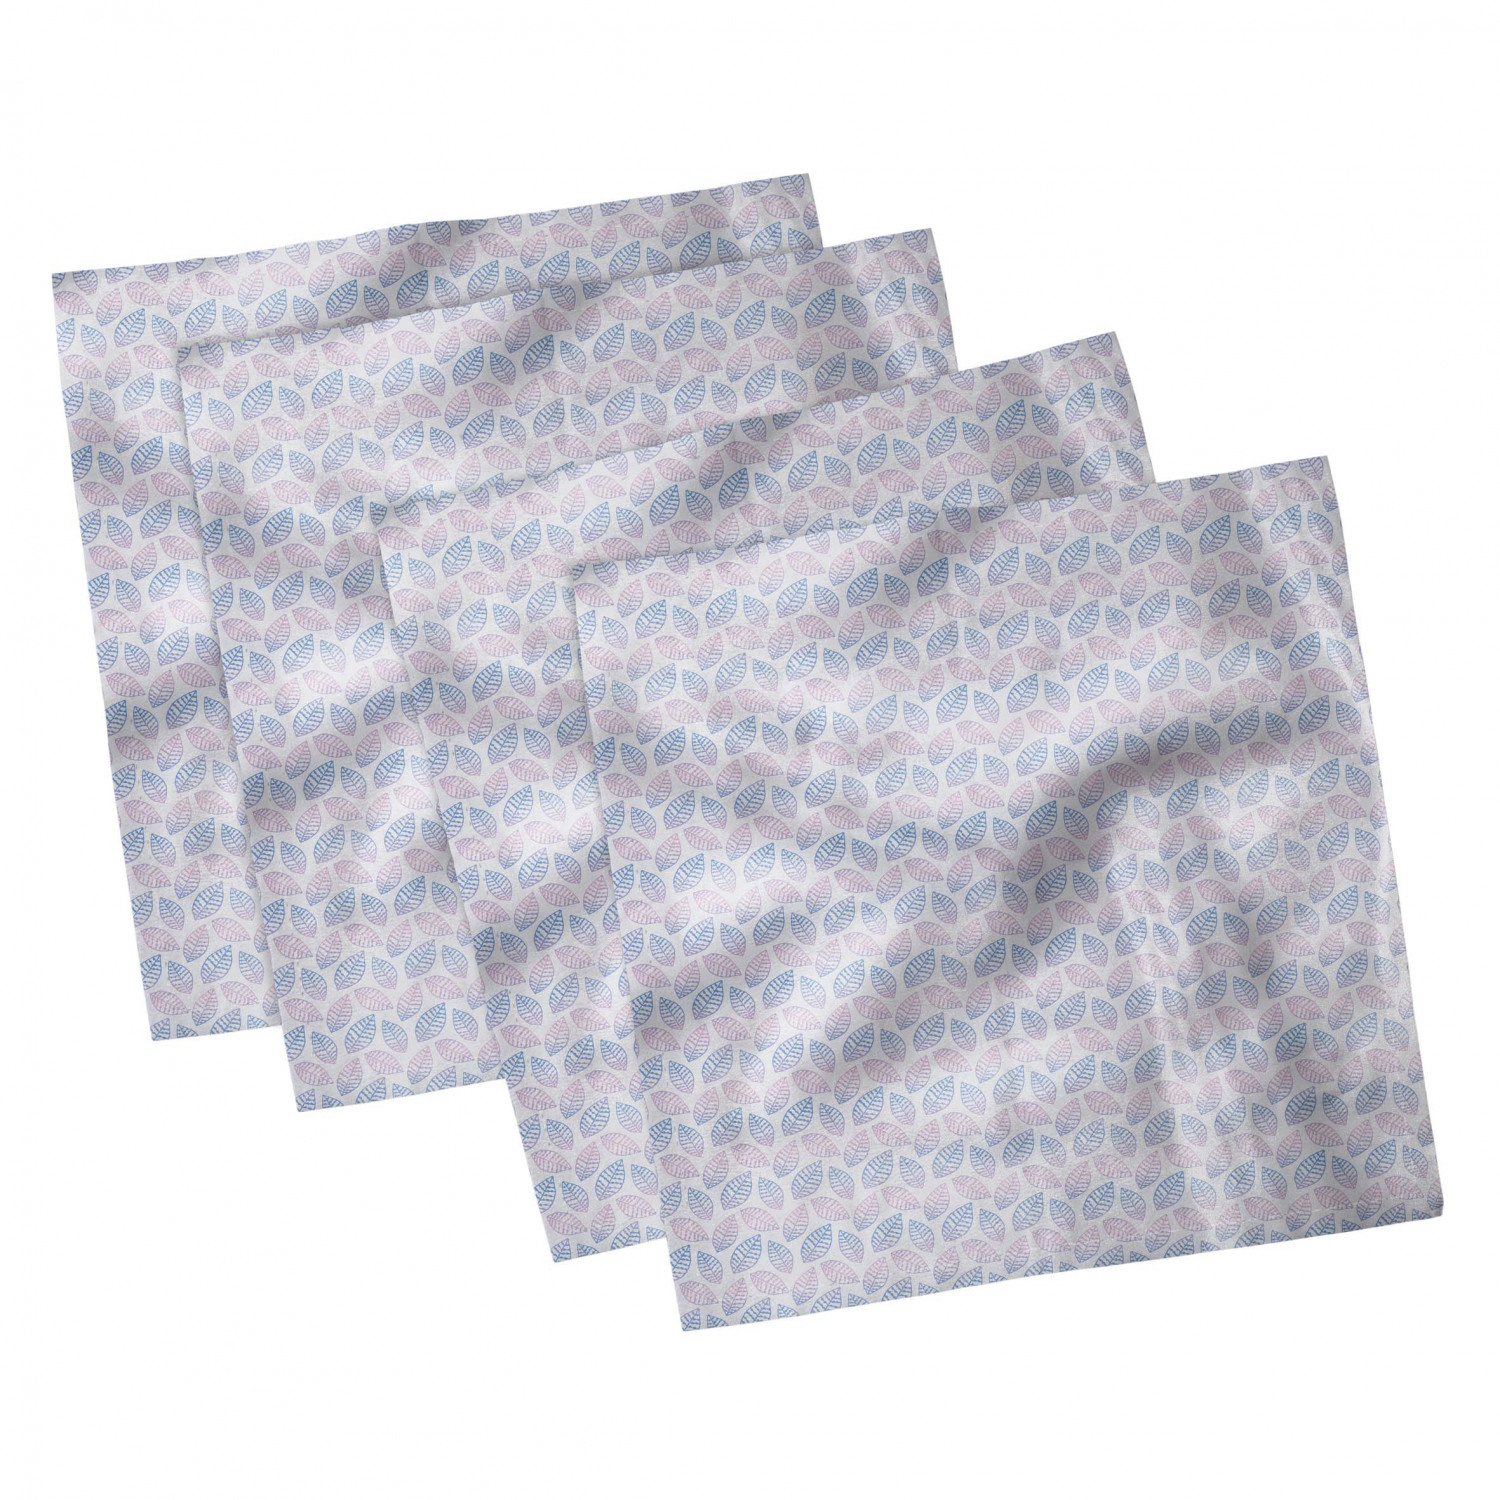 thumbnail 59 - Ambesonne-Leaves-Forest-Decorative-Satin-Napkins-Set-of-4-Party-Dinner-Fabric